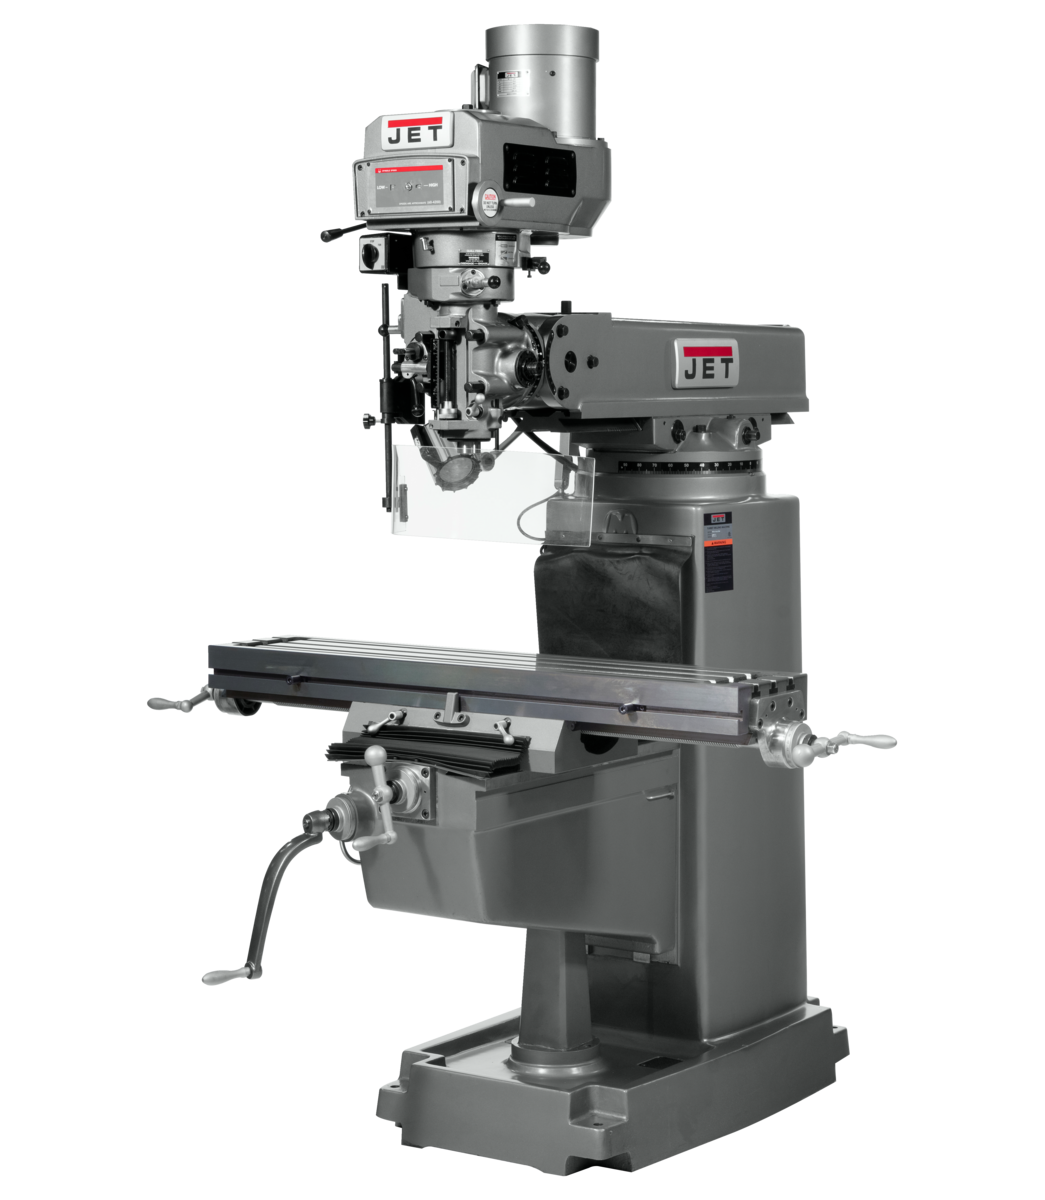 JTM-1050VS2 Mill With Newall DP700 DRO With X-Axis Powerfeed